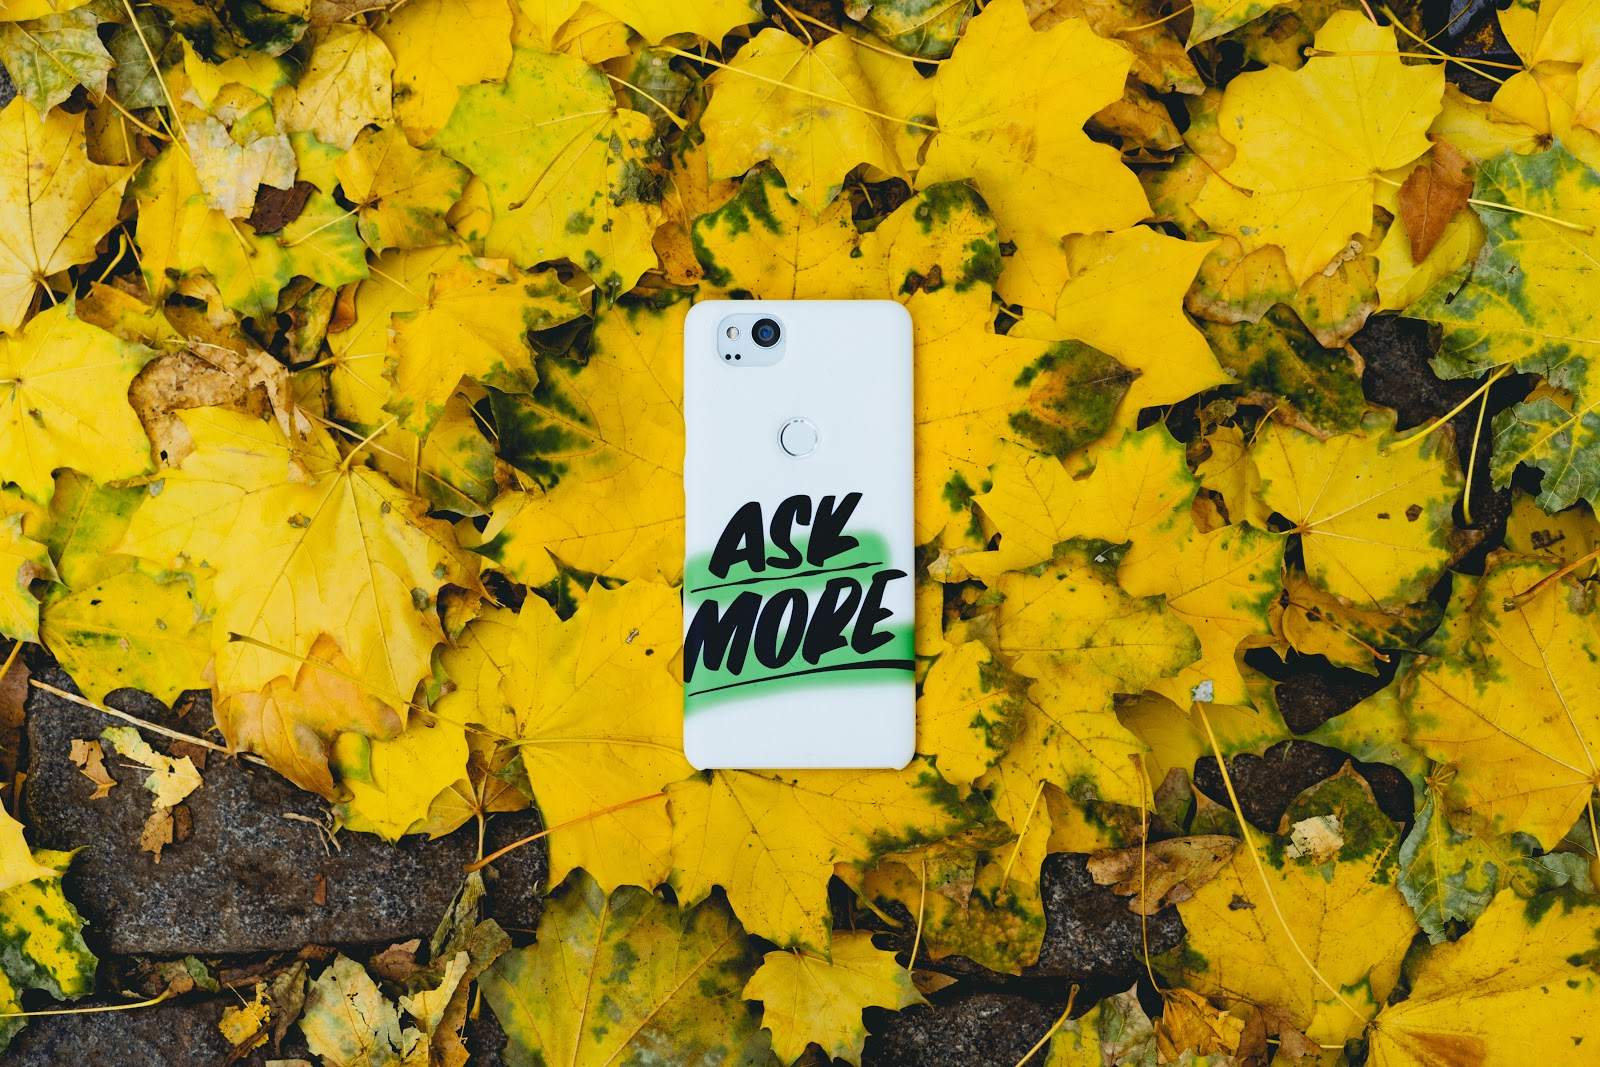 Phone with Ask More caption laying on the ground